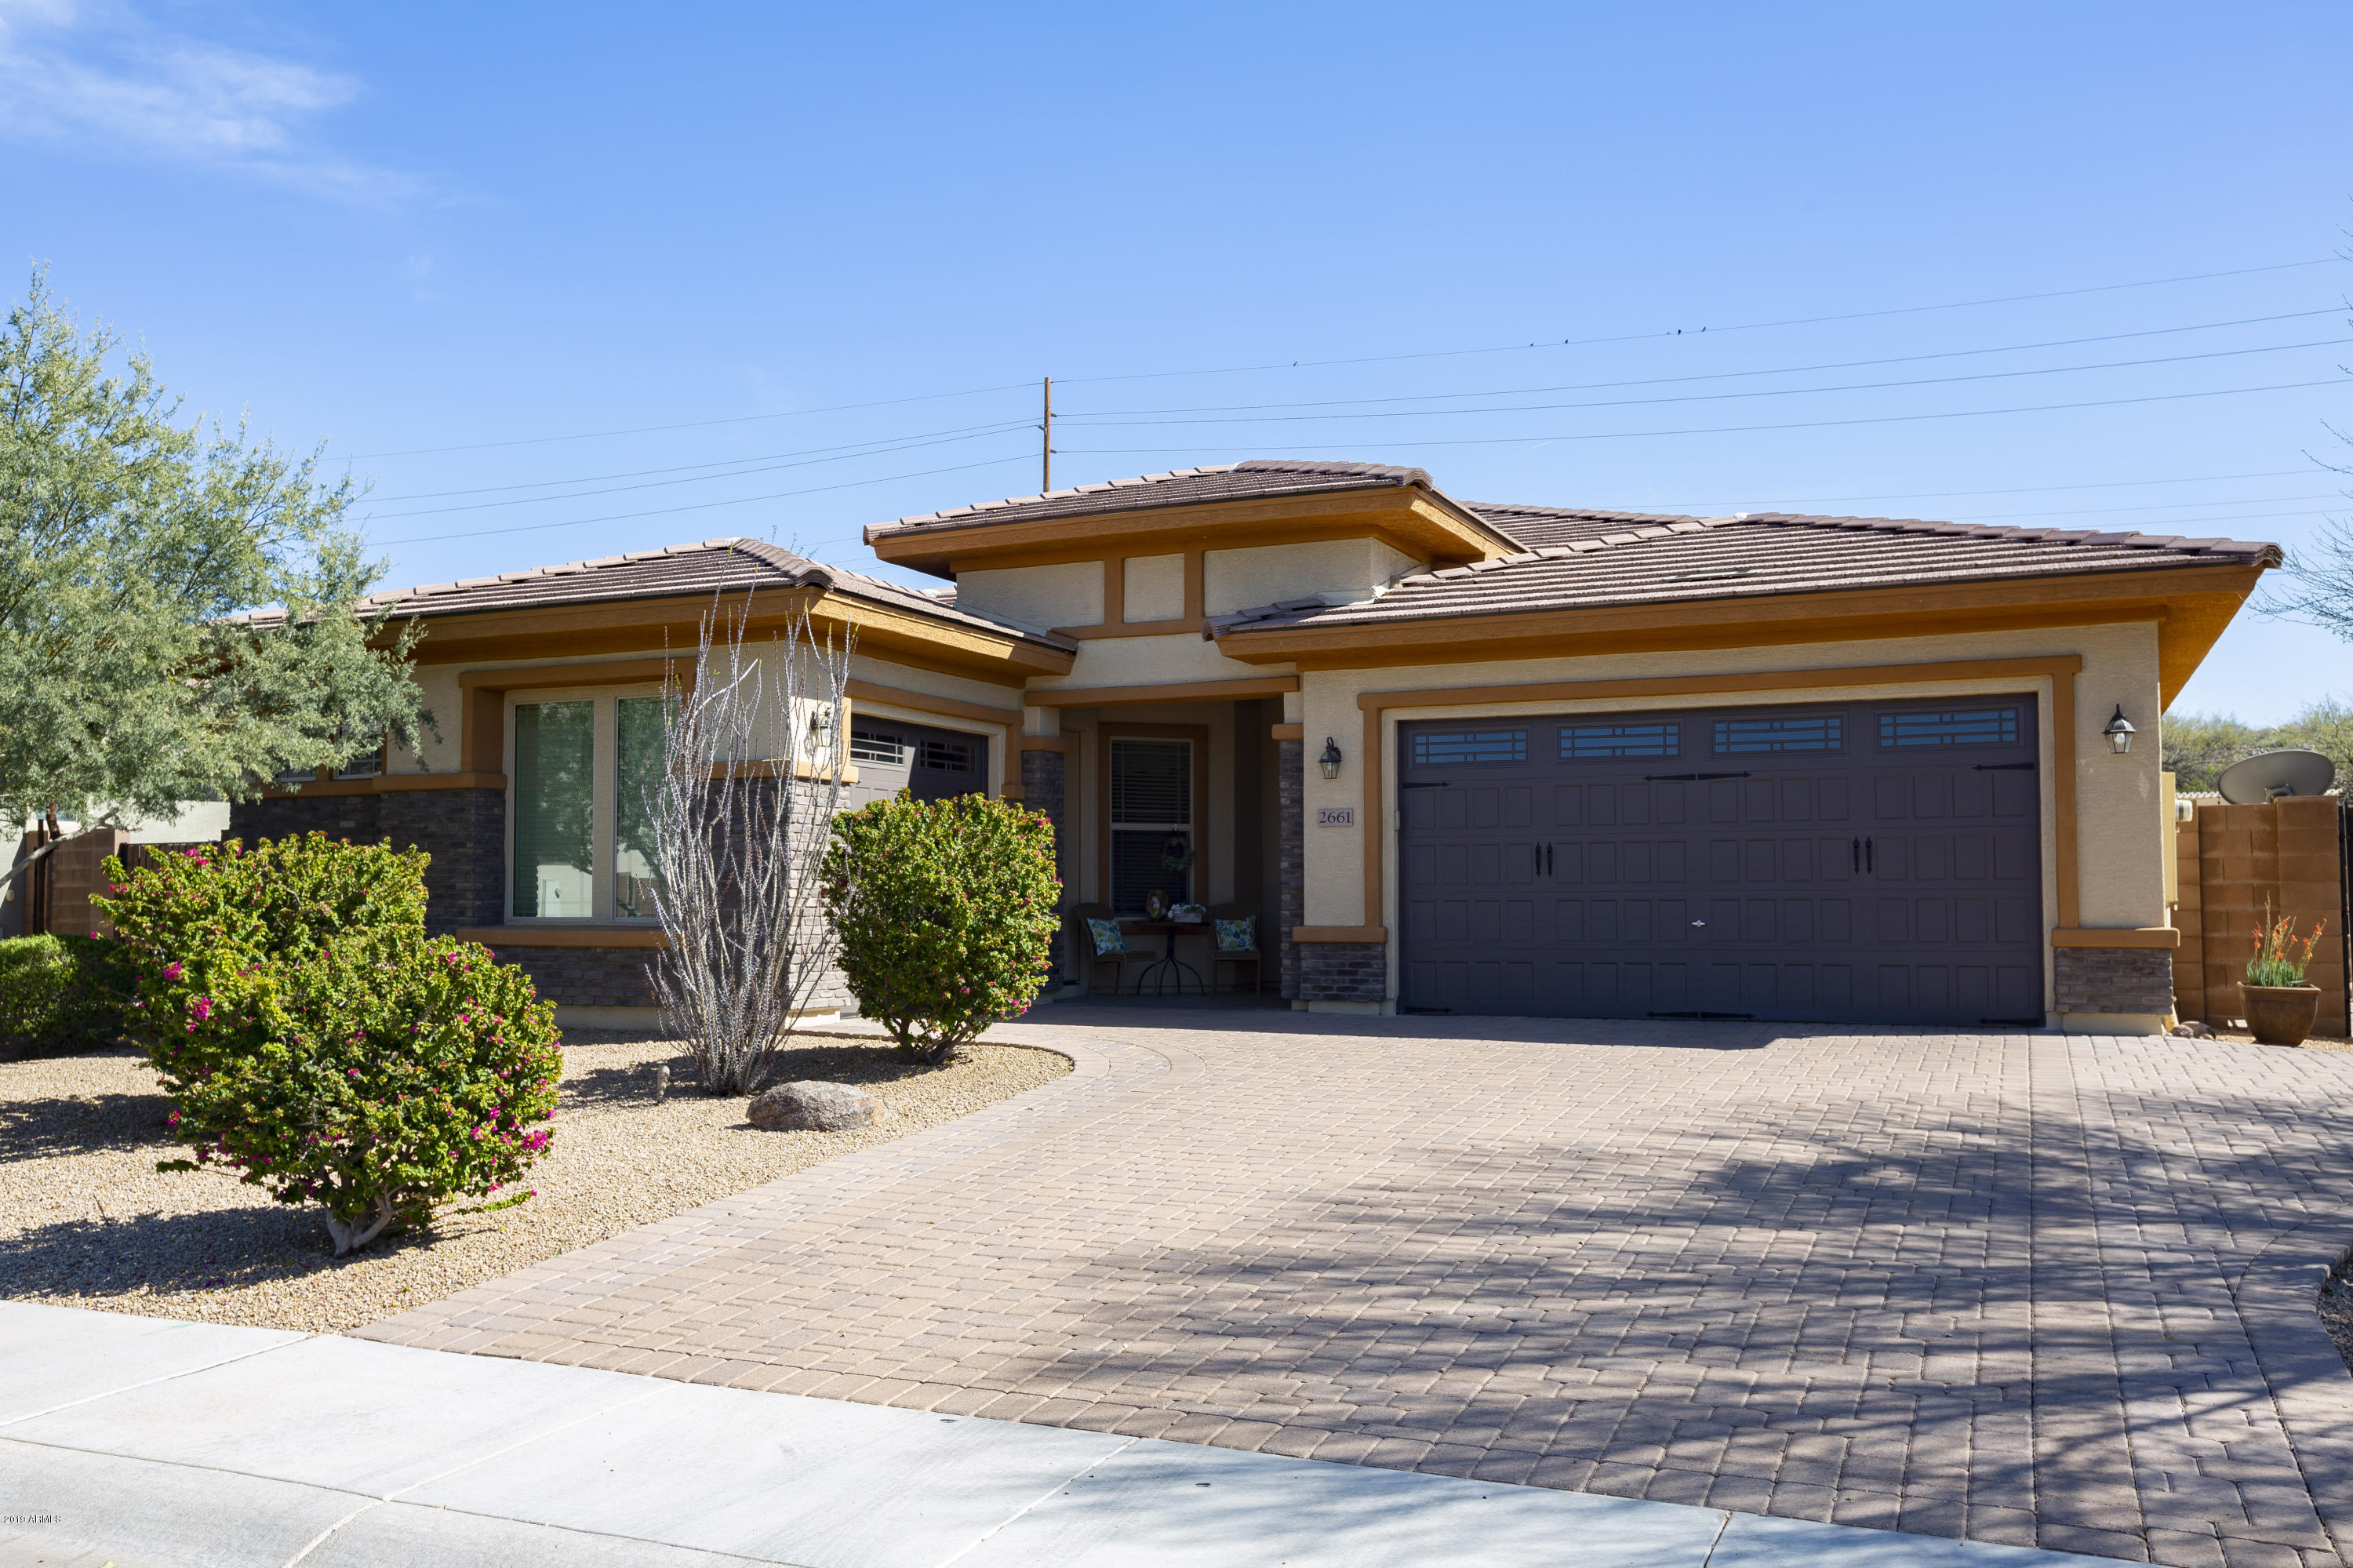 Photo of 2661 E ODESSA Street, Mesa, AZ 85213